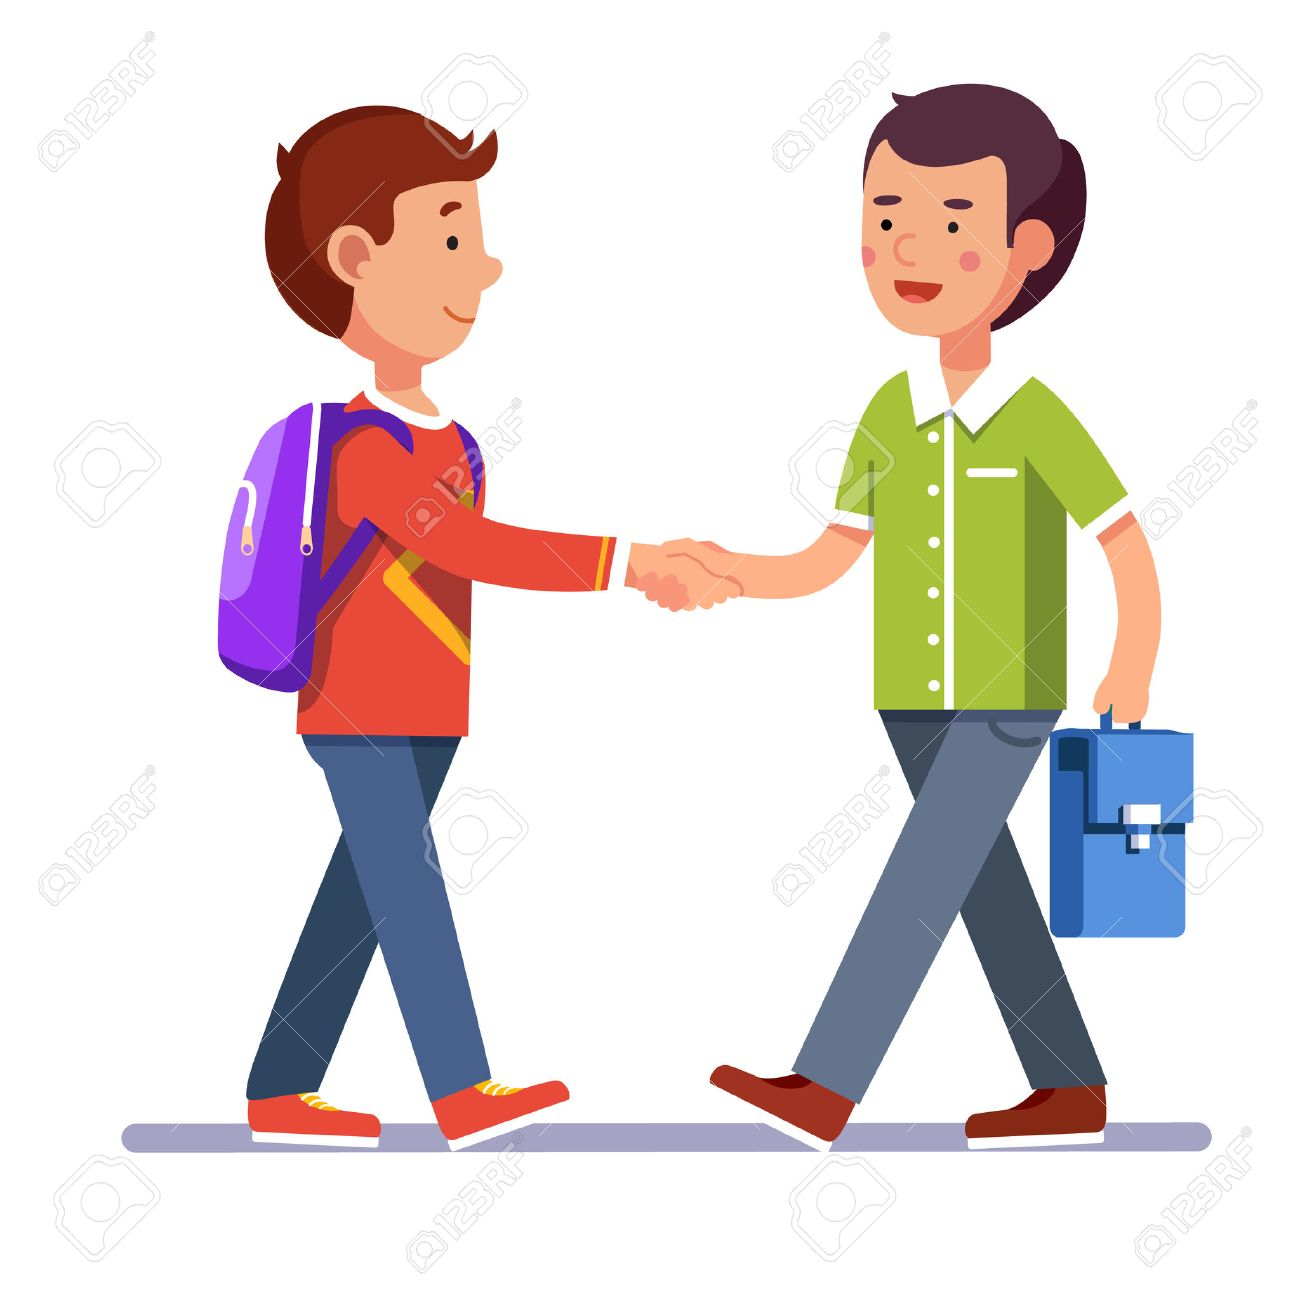 Two boys standing and shaking hands making peace or new acquaintance.